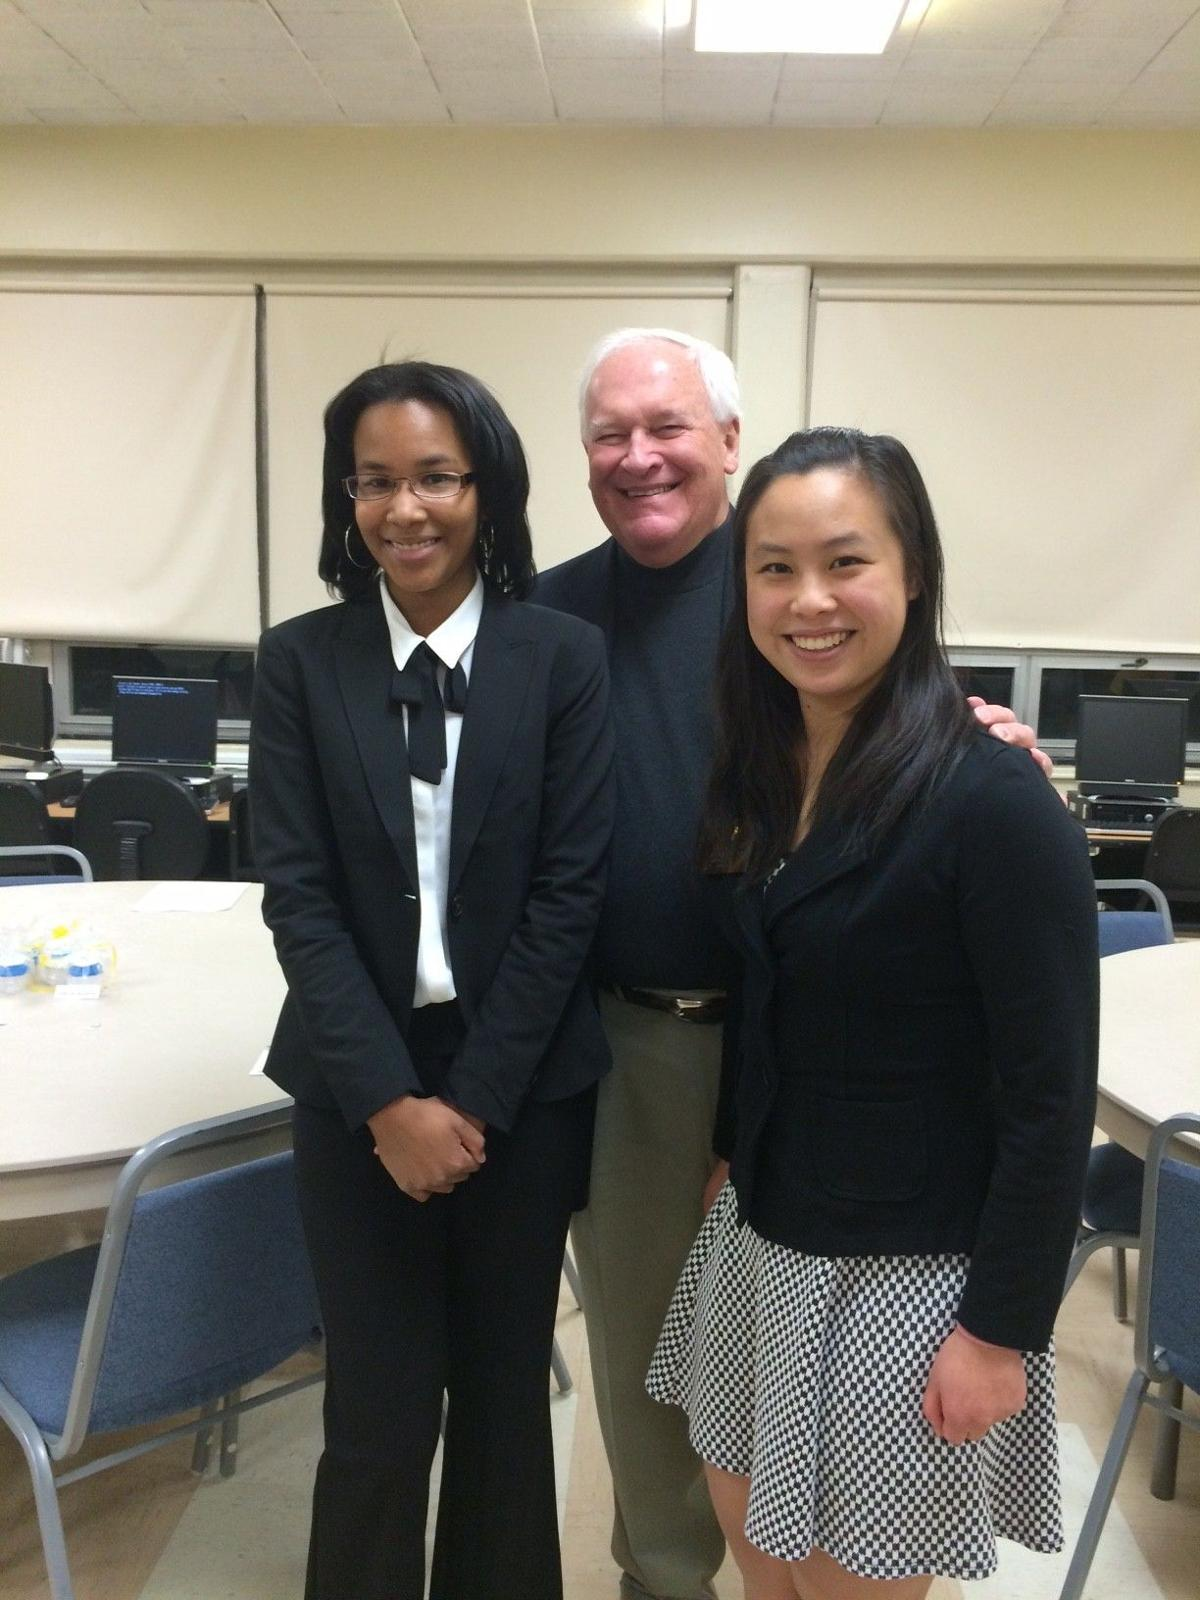 Millville student new key club Lieutenant Governor